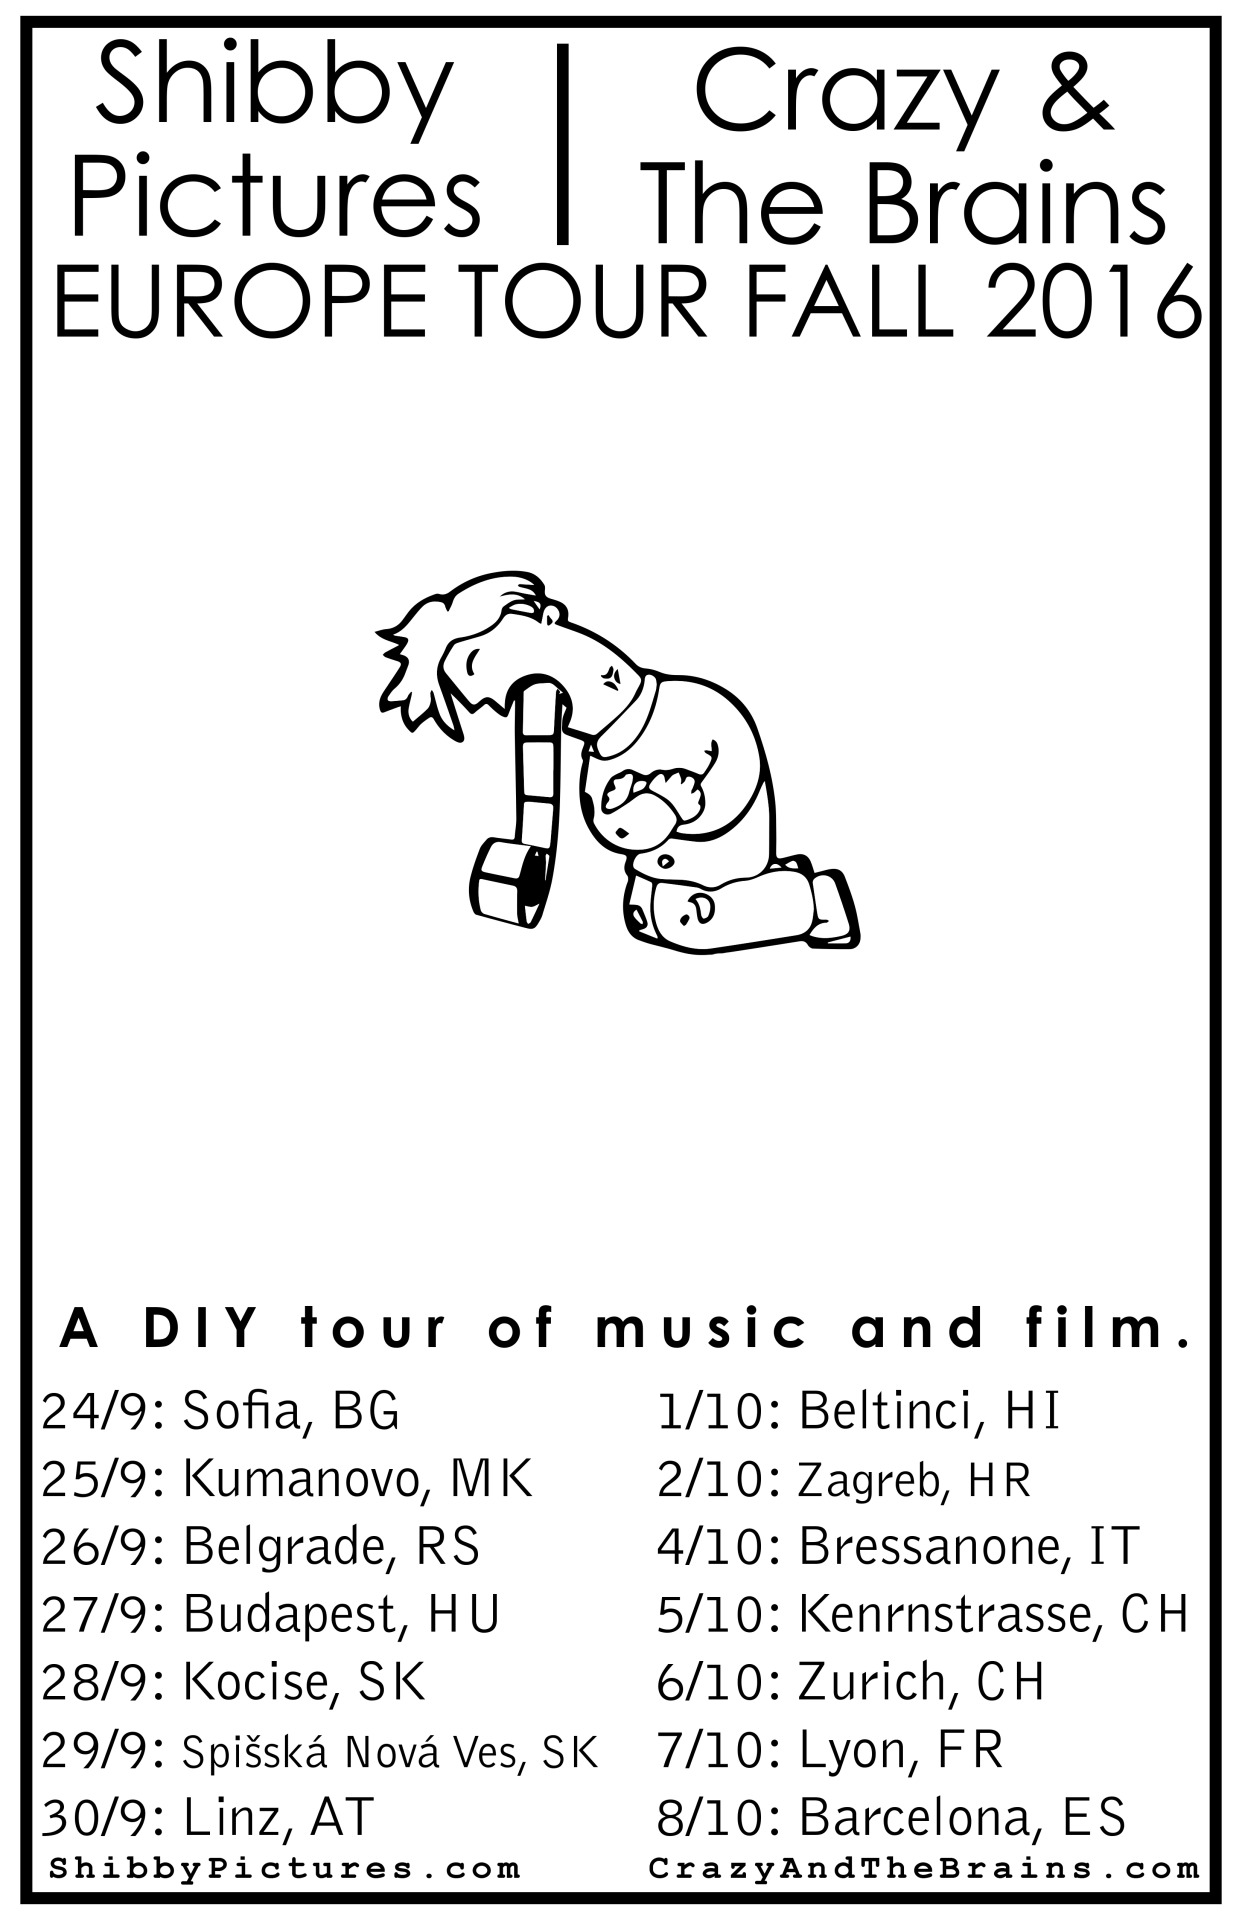 Final tour dates for my Europe tour starting THIS WEEK! with Crazy and The Brains! Come watch some movies and listen to some music. Details on my page!